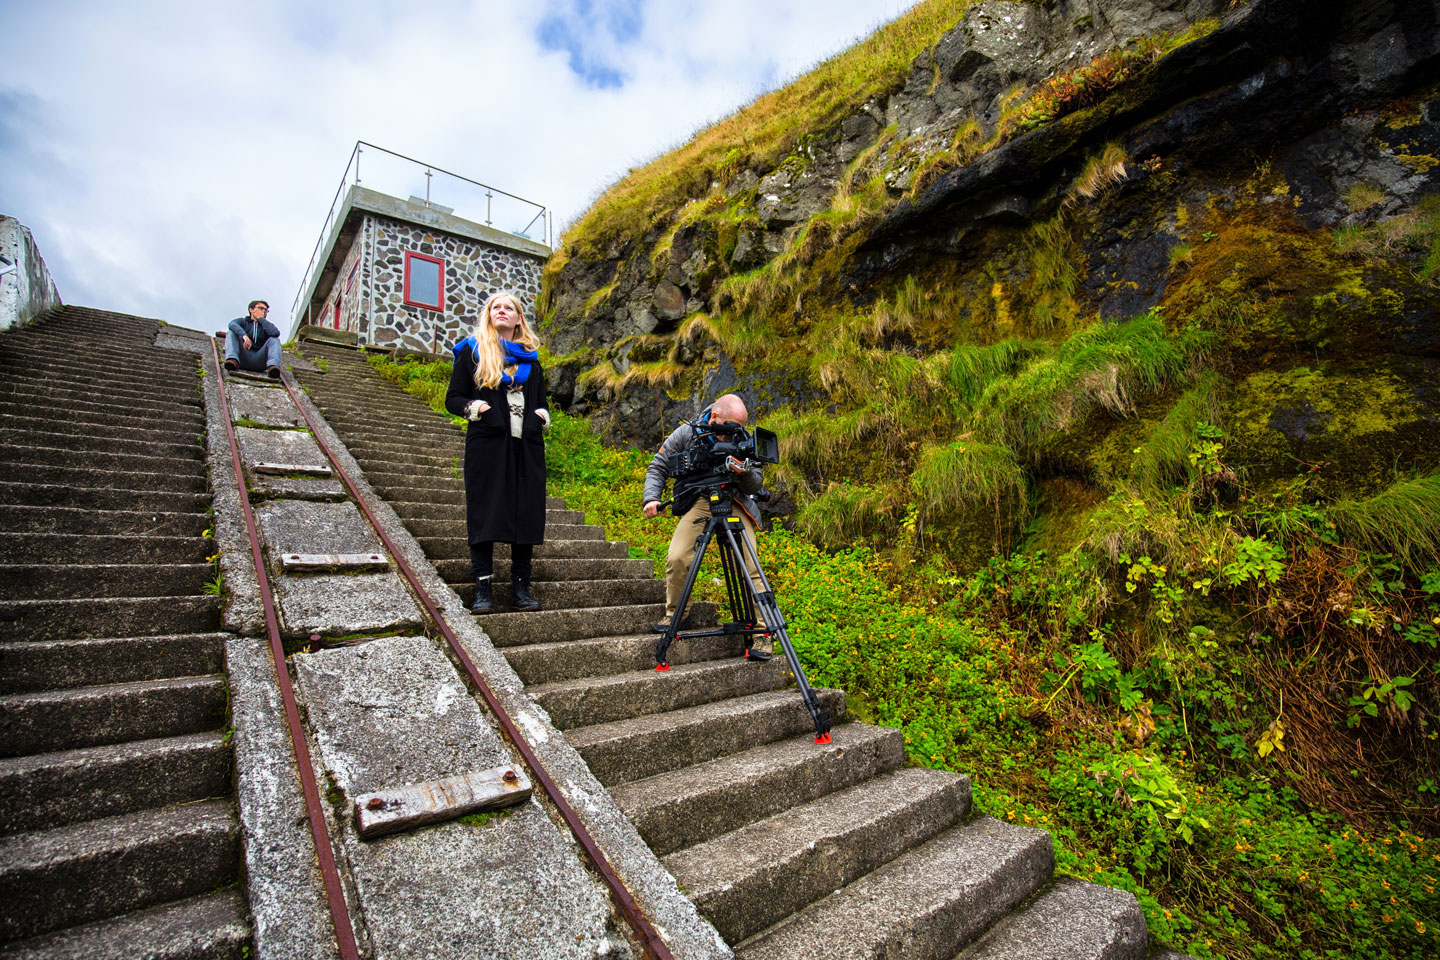 Filming on staircase Faroe Islands